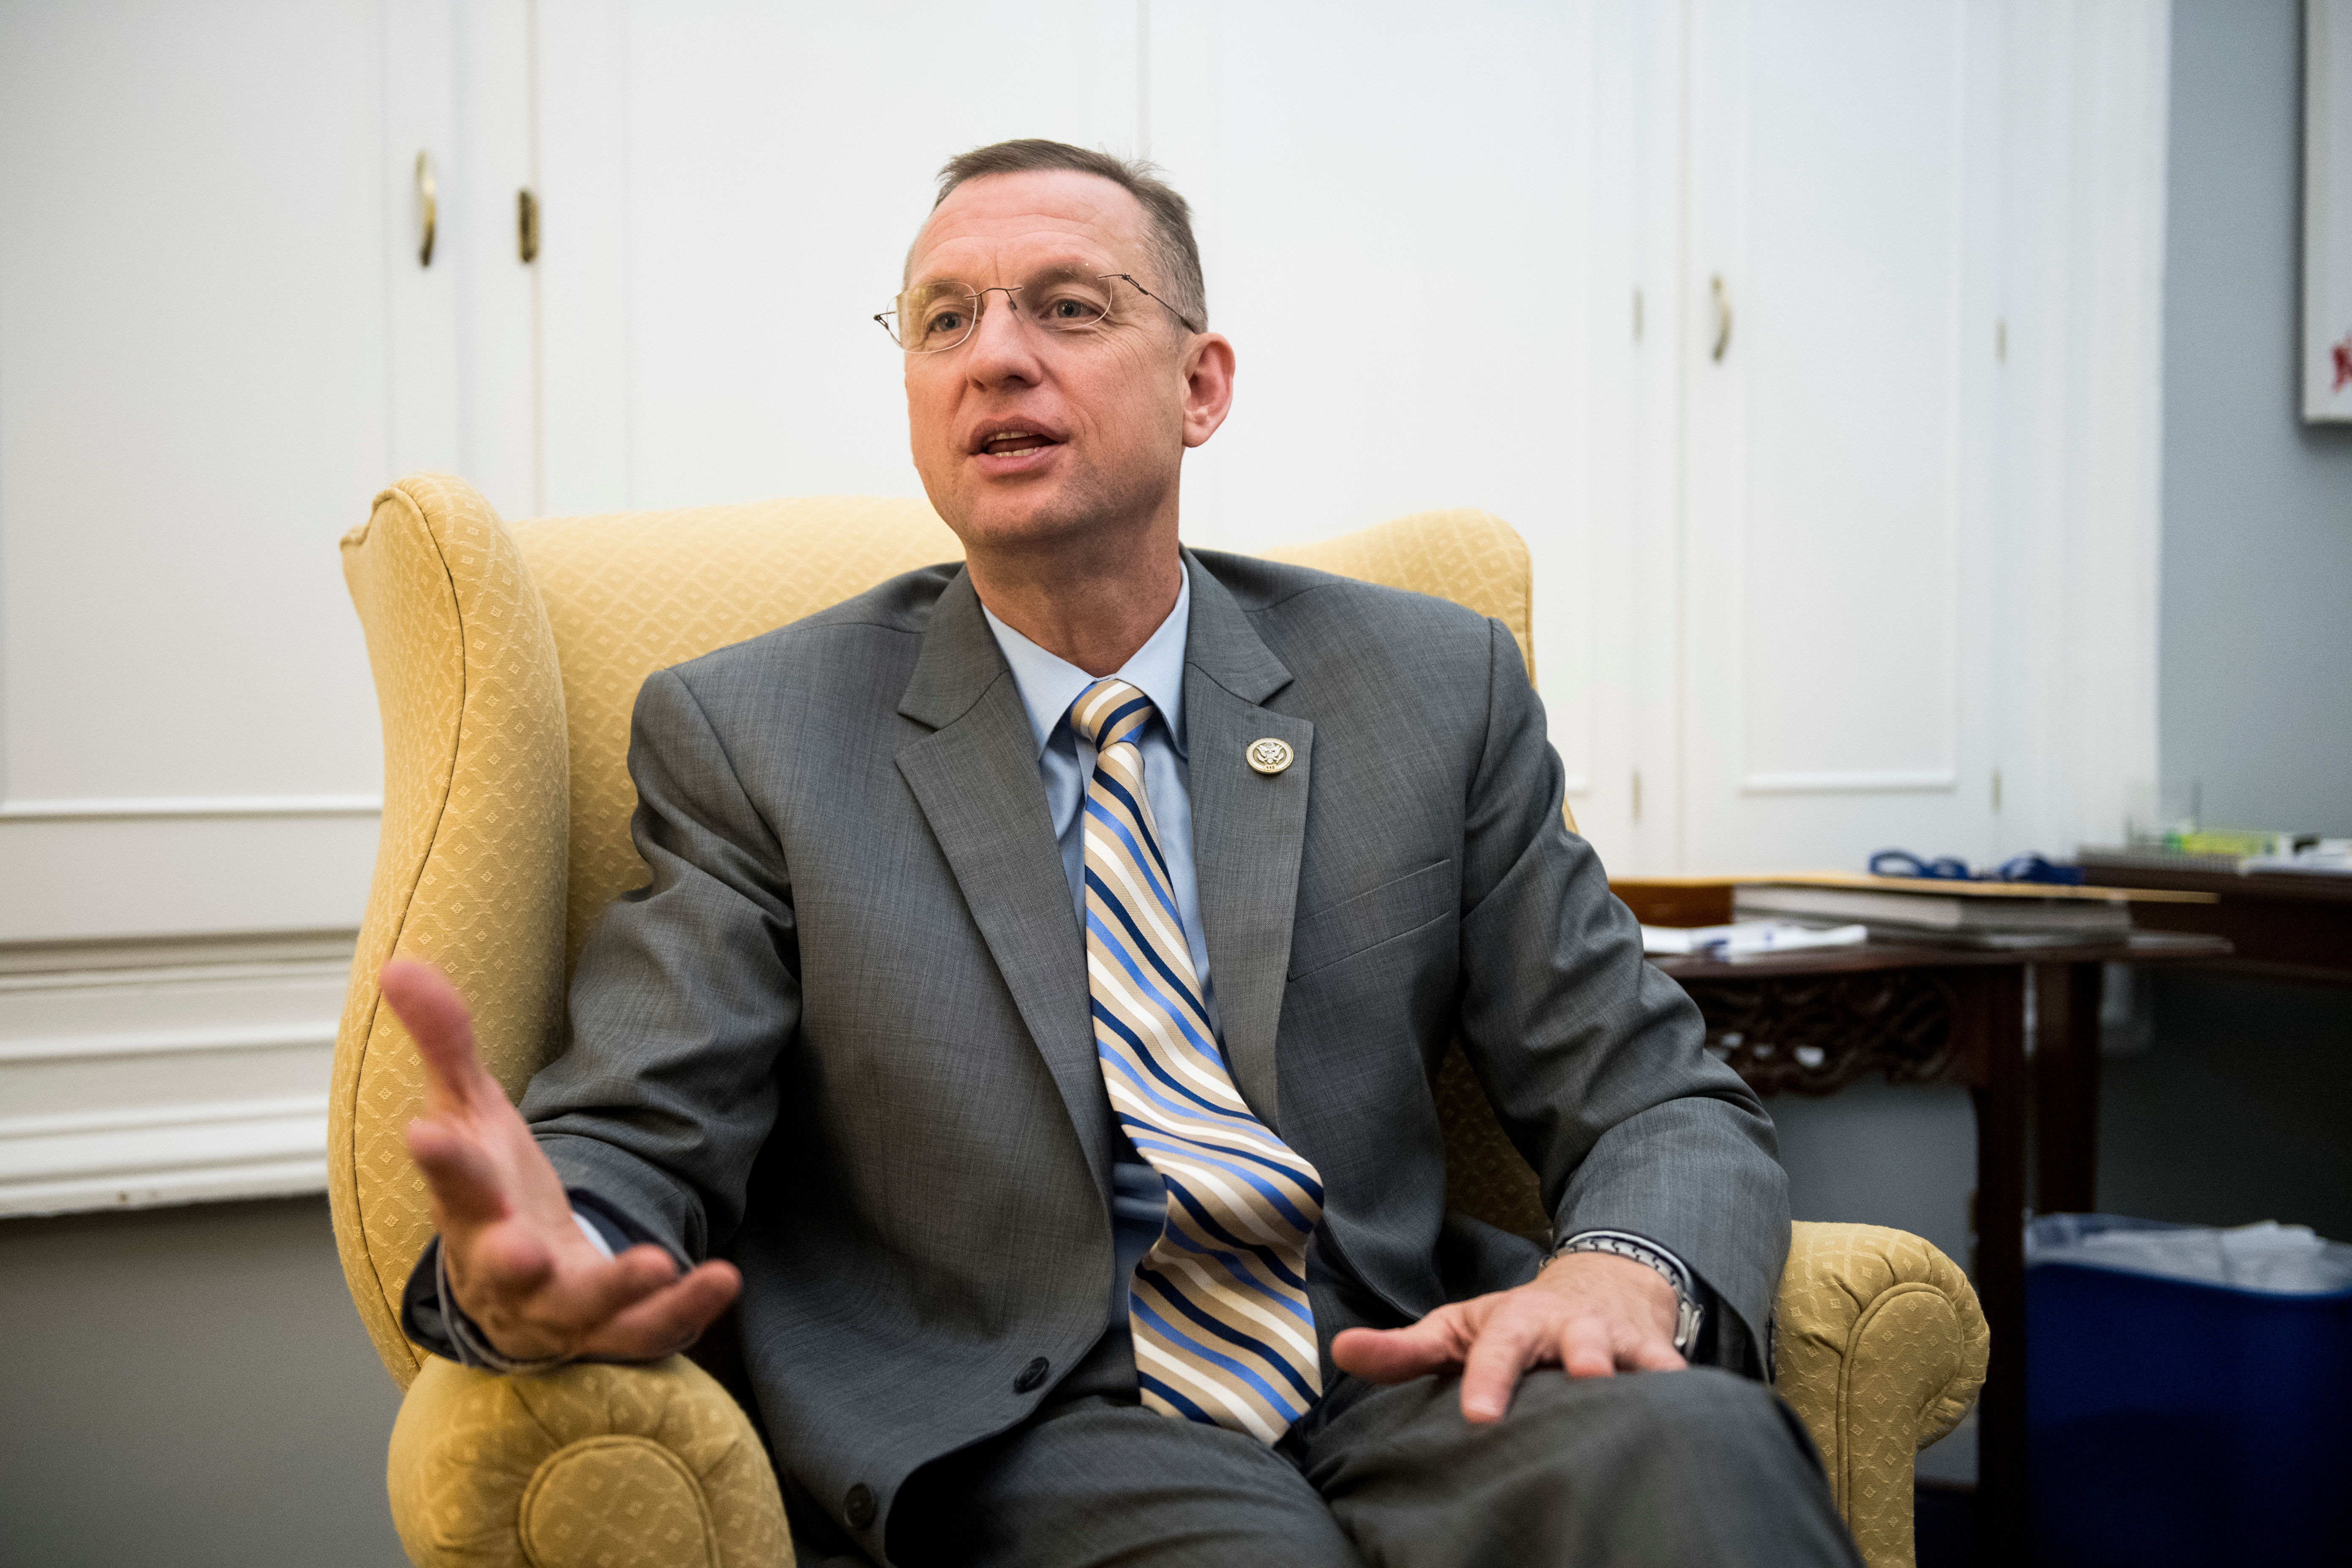 UNITED STATES - APRIL 10: Rep. Doug Collins, R-Ga., speaks with Roll Call on Tuesday, April 10, 2018. (Photo By Bill Clark/CQ Roll Call)